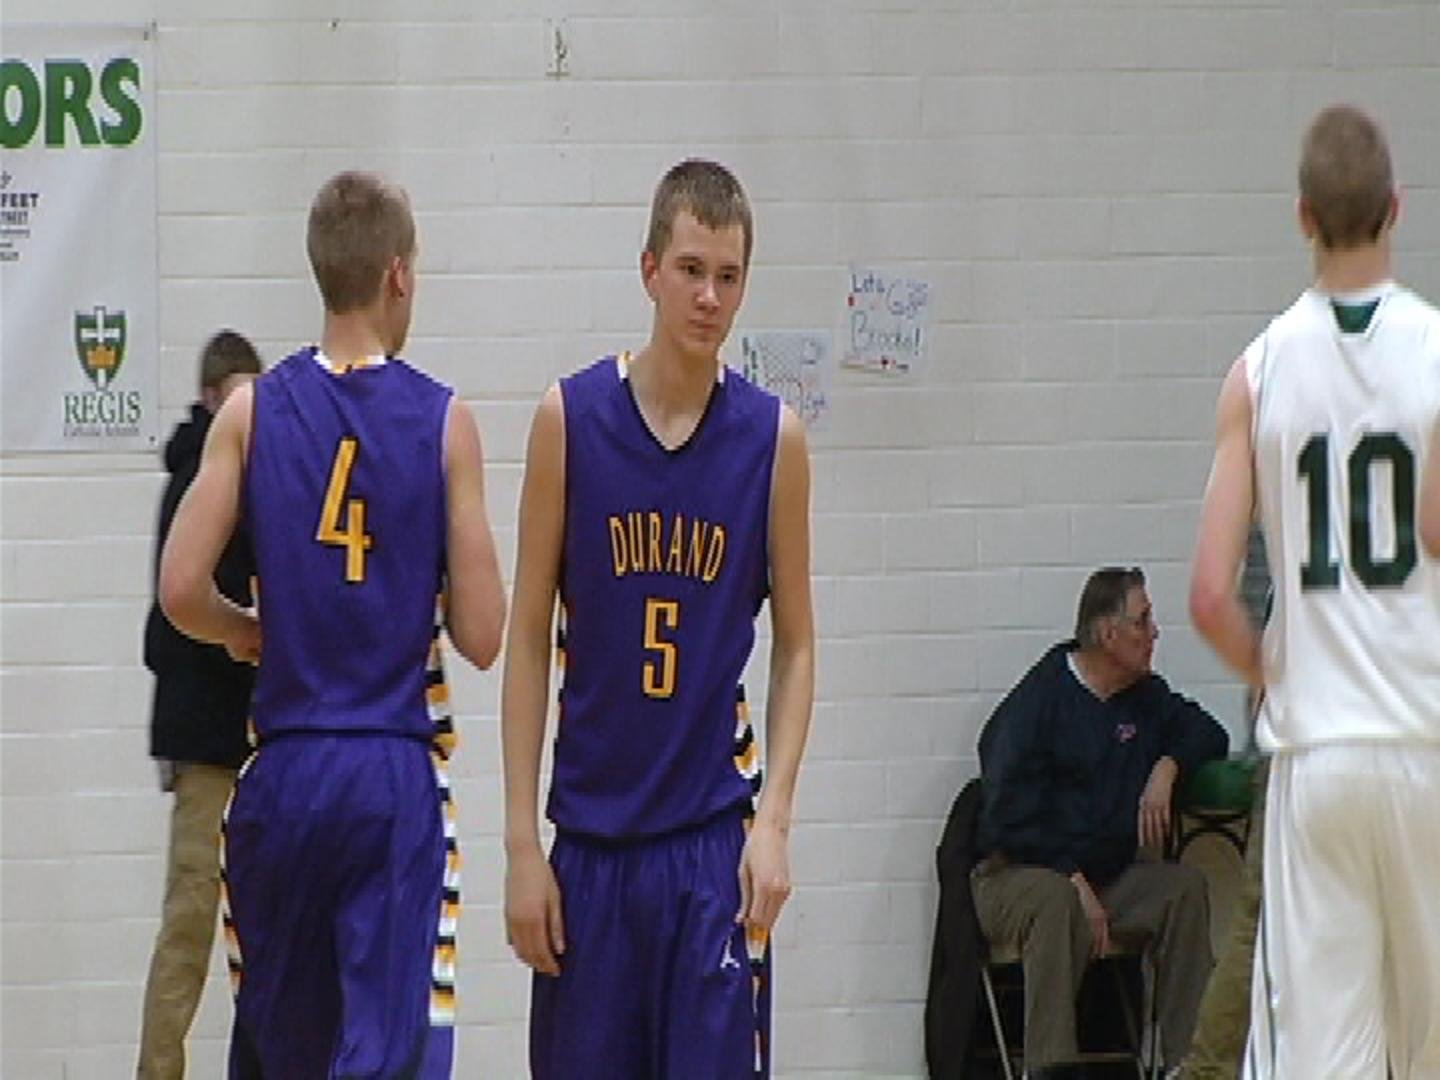 Durand remains unbeaten with a win at EC Regis